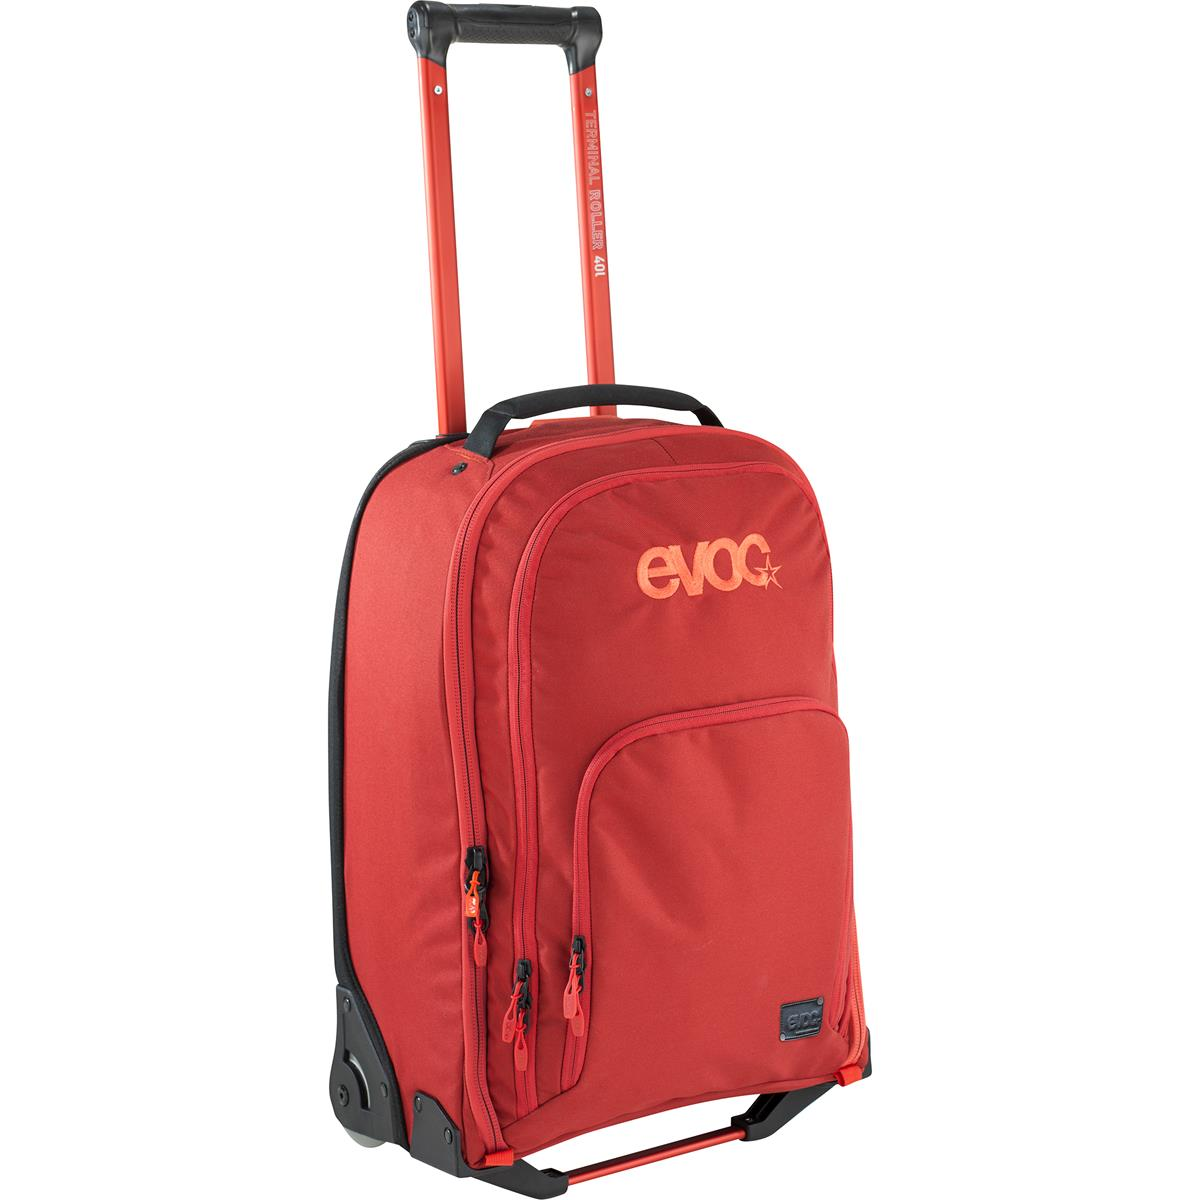 Evoc Rollkoffer Terminal Roller Chili Red, 40 L